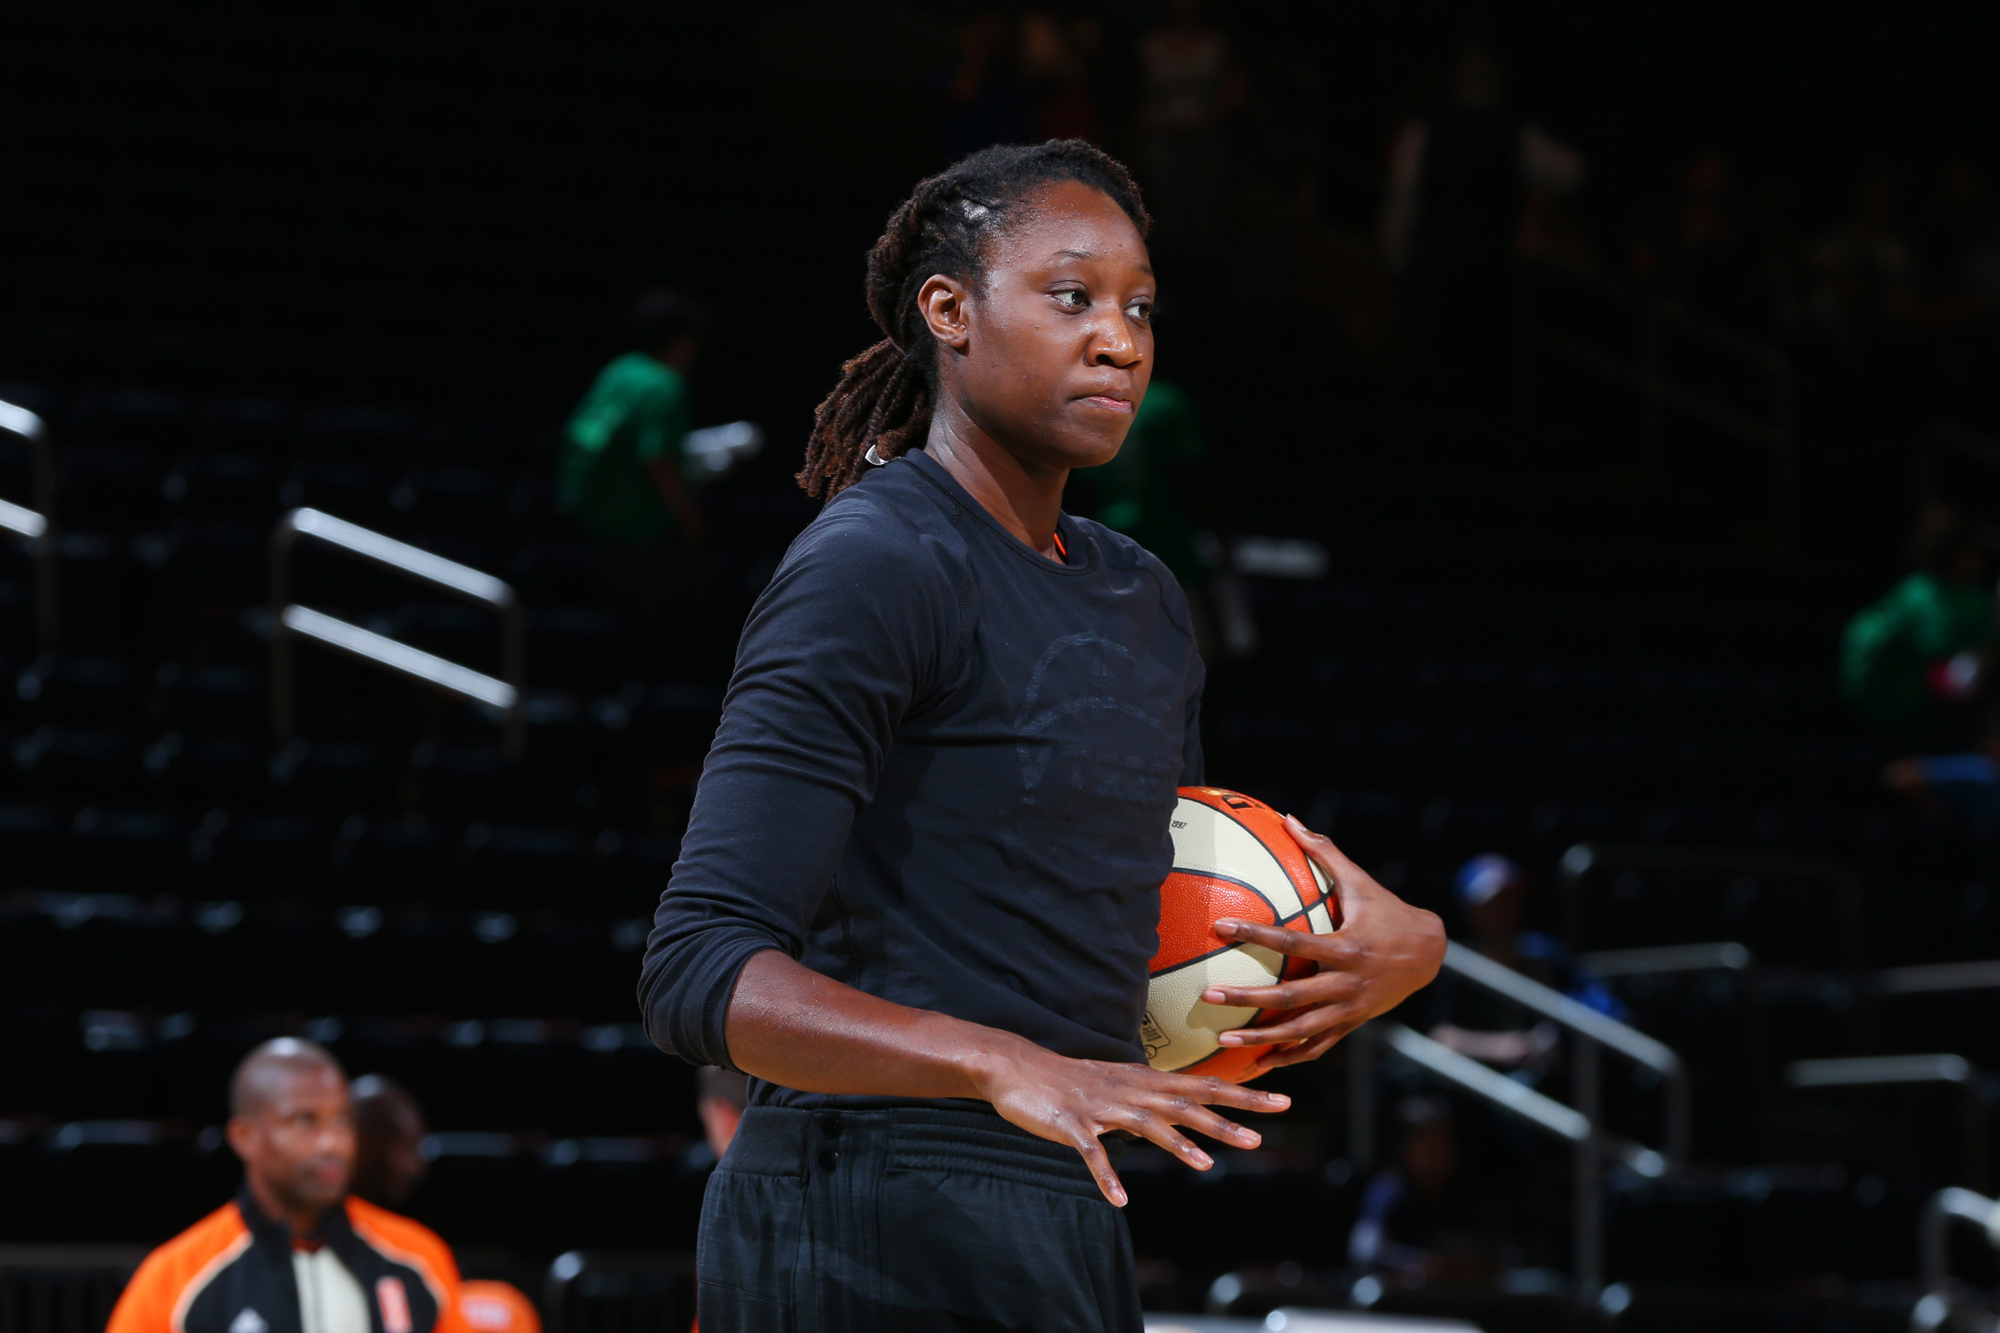 Tina Charles #31 of the New York Liberty warms up before the game against the Indiana Fever on July 21, 2016 at Madison Square Garden in New York, New York.